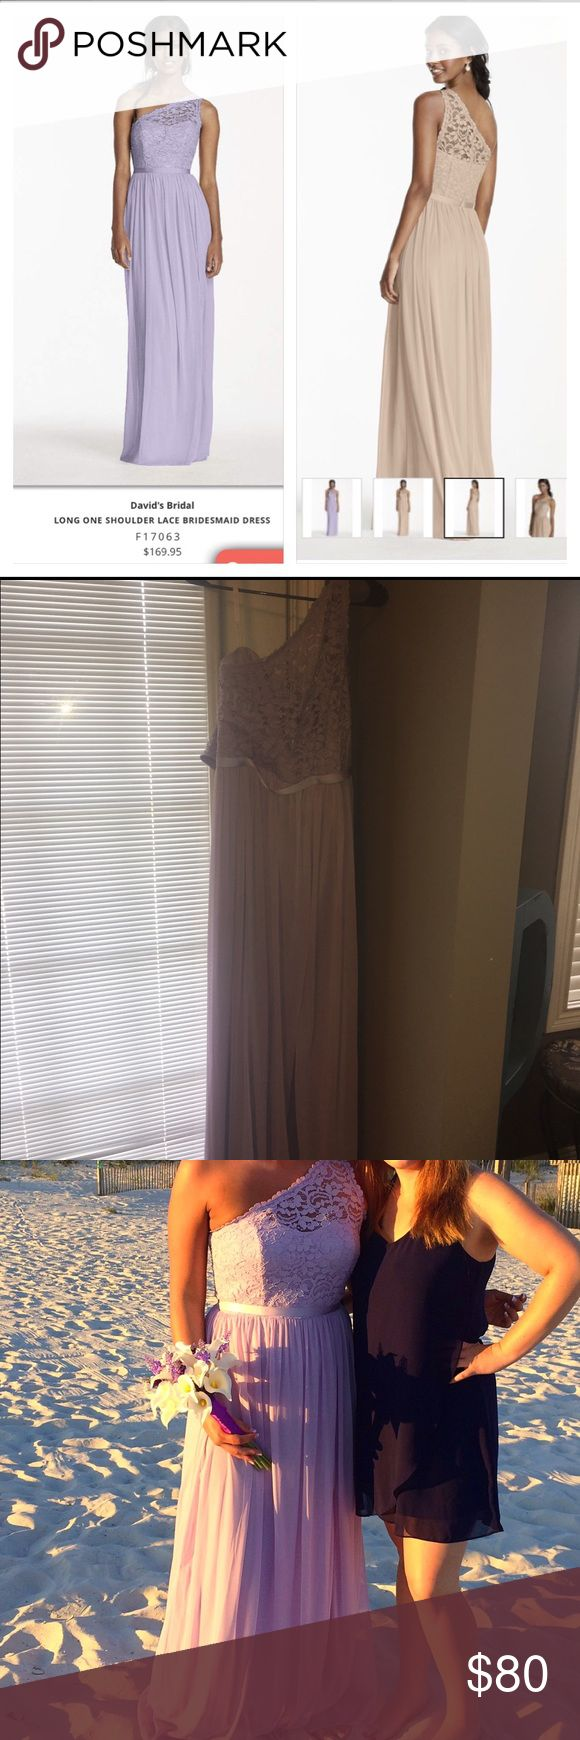 Iris One Shoulder Lace Bridesmaid Dress Ladies one shoulder Davids Bridal one shoulder Lace bridesmaid dress. Worn once. Had small run in front of dress (last photo) but can't really tell when it's on because the dress is a flowy dress and small stain on lower back part of dress near ankles. Again, not very noticeable (last photo), photo looks bright because of flash. Size 10. Purchased from Davids Bridal for $170. Color is considered iris - light purple color. Third photo is actually me…